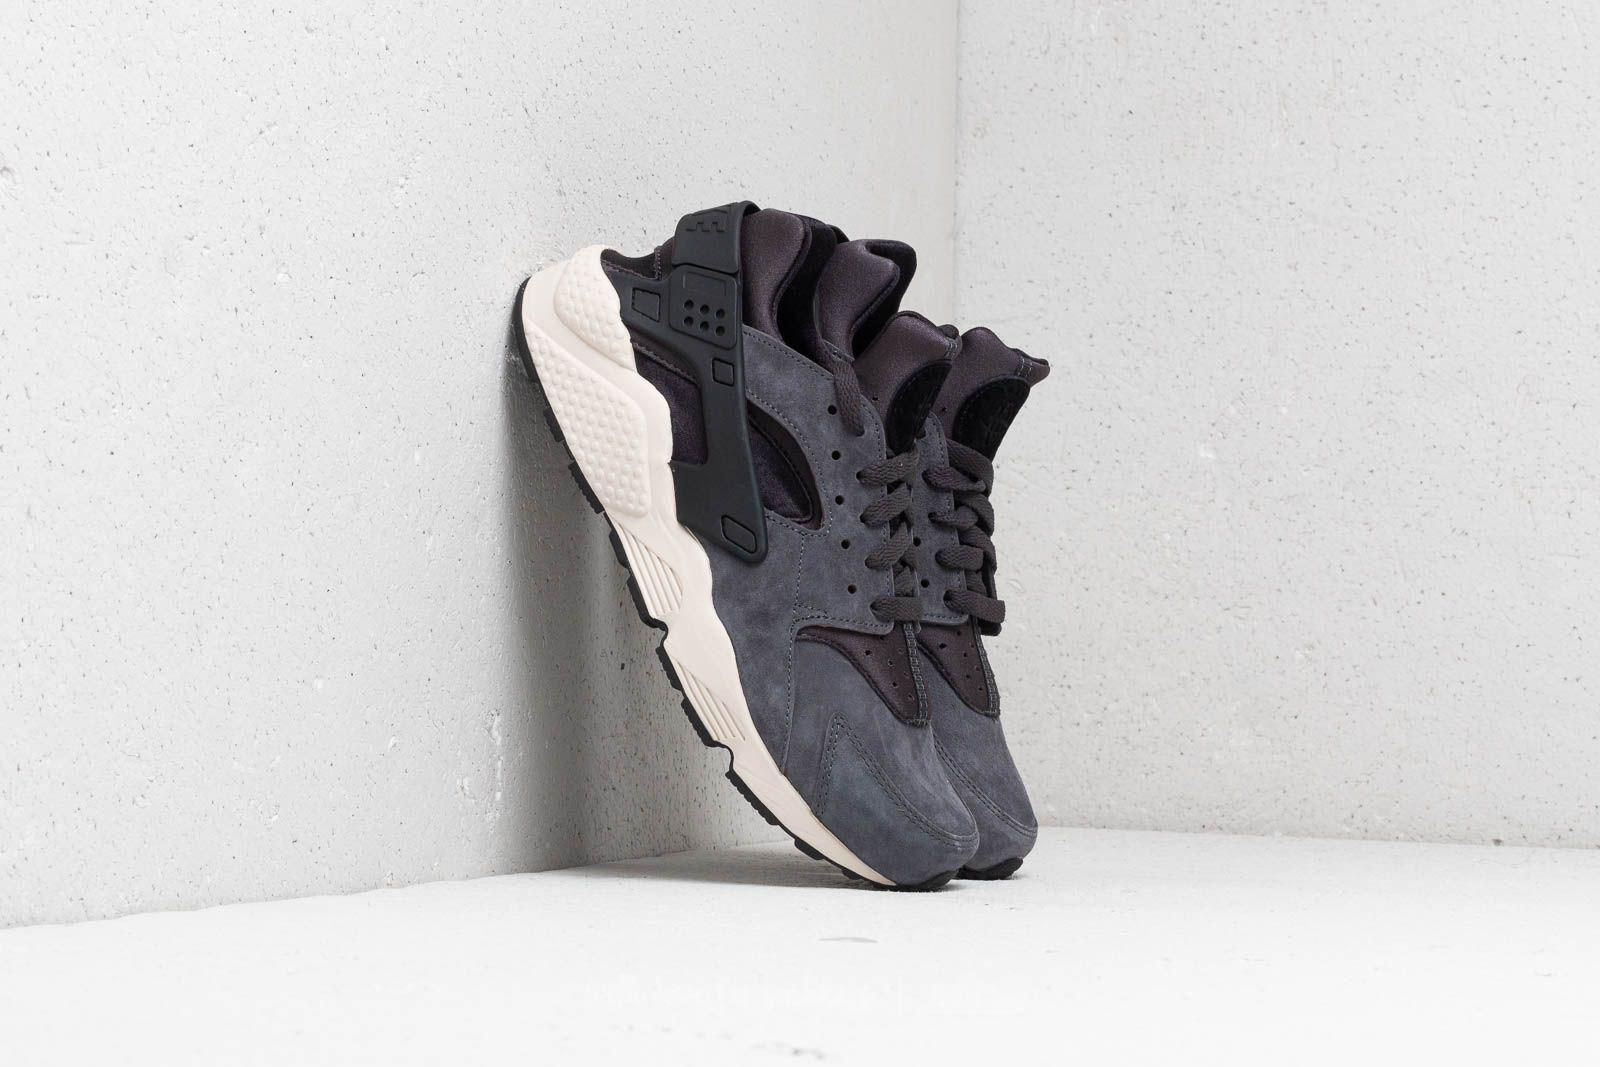 san francisco 479d7 b4898 Lyst - Nike Air Huarache Run Premium Anthracite  Black-light Bone in ...